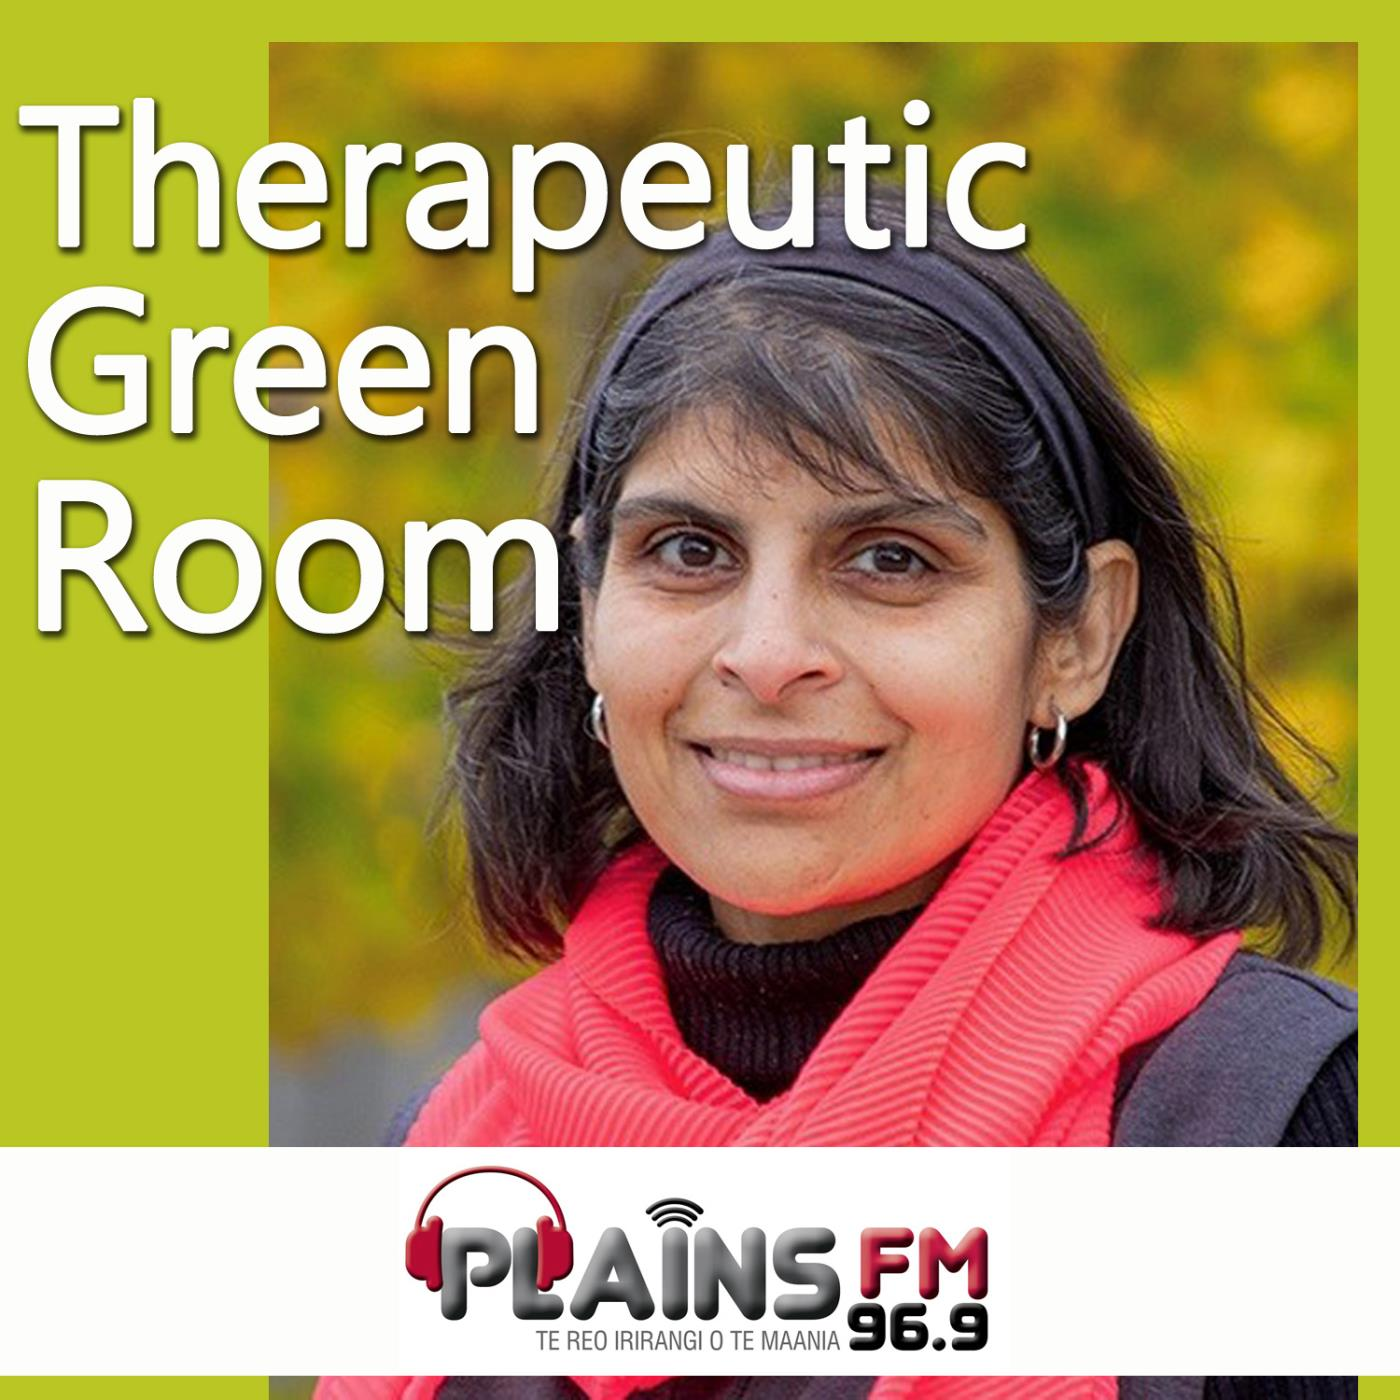 Therapeutic Green Room - Are You Your Worst Critic or Best Friend?